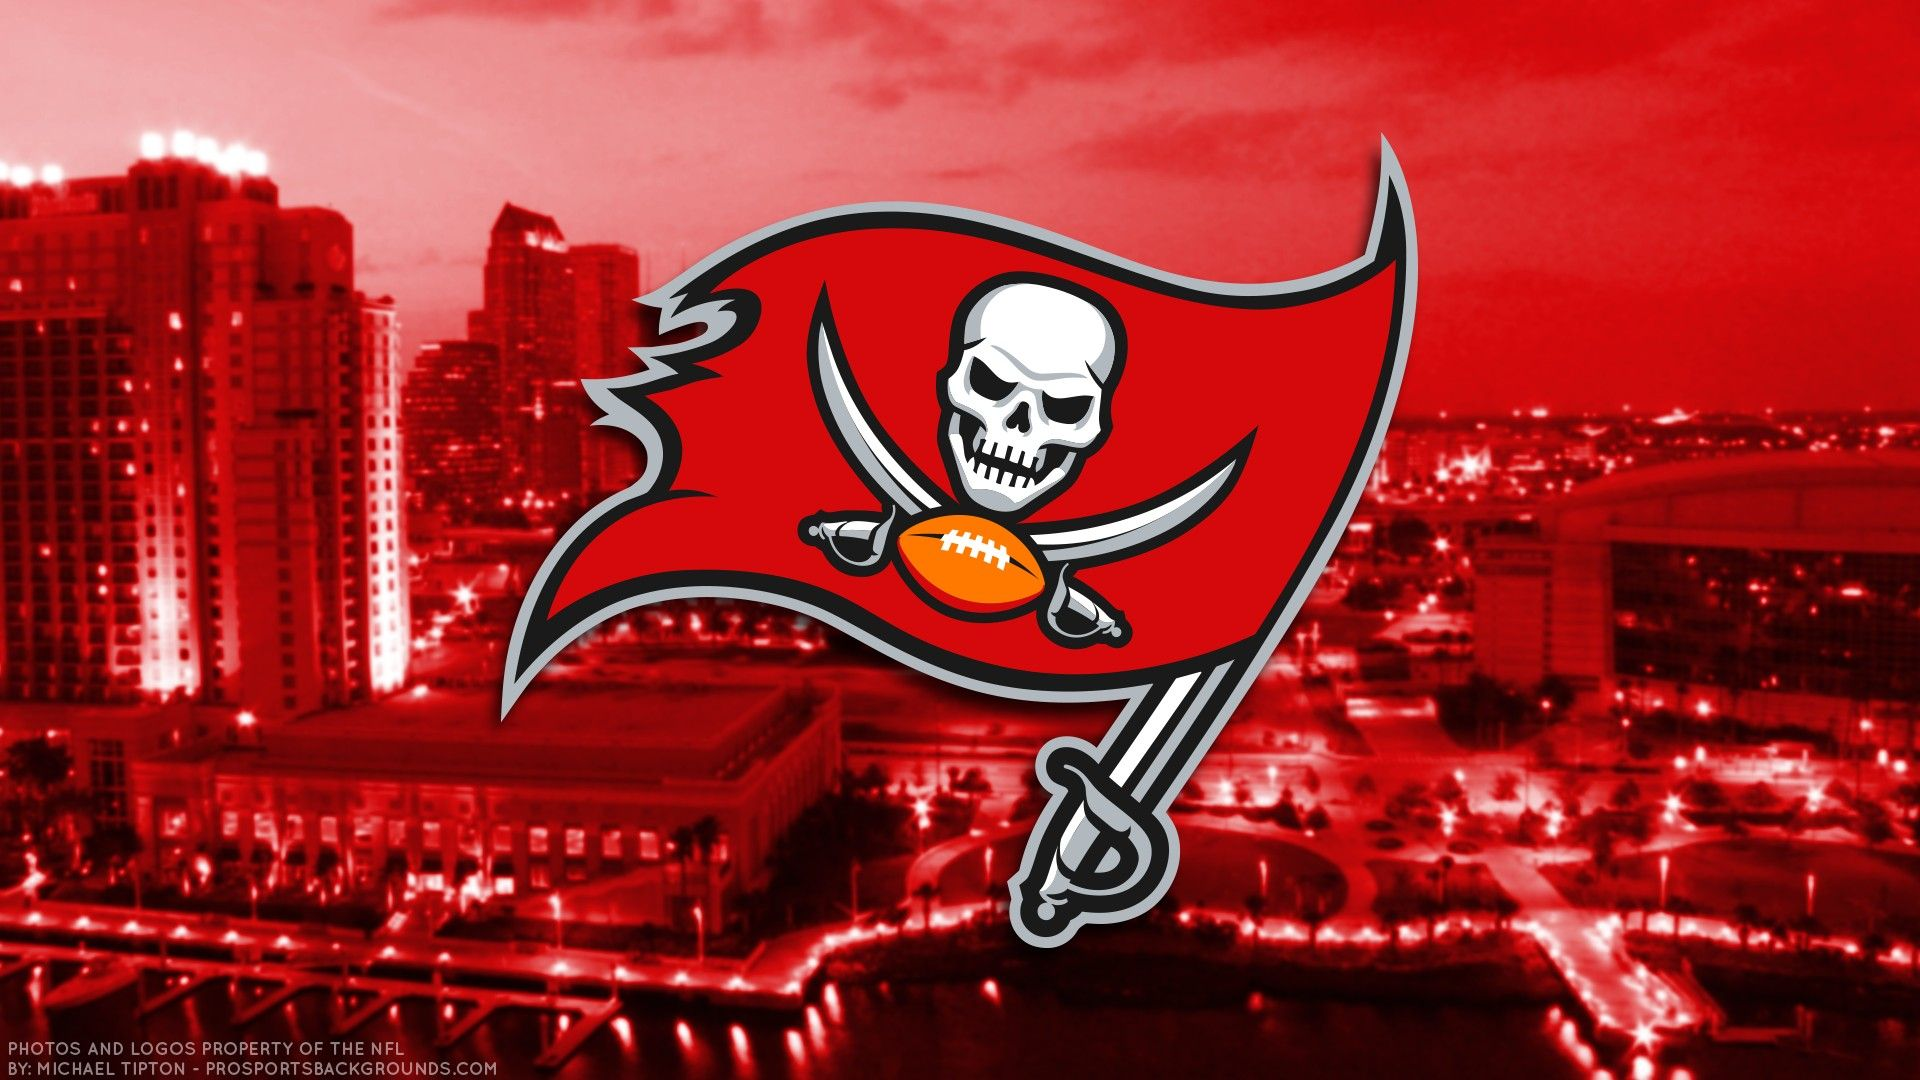 Tampa Bay Buccaneers Wallpapers - Top